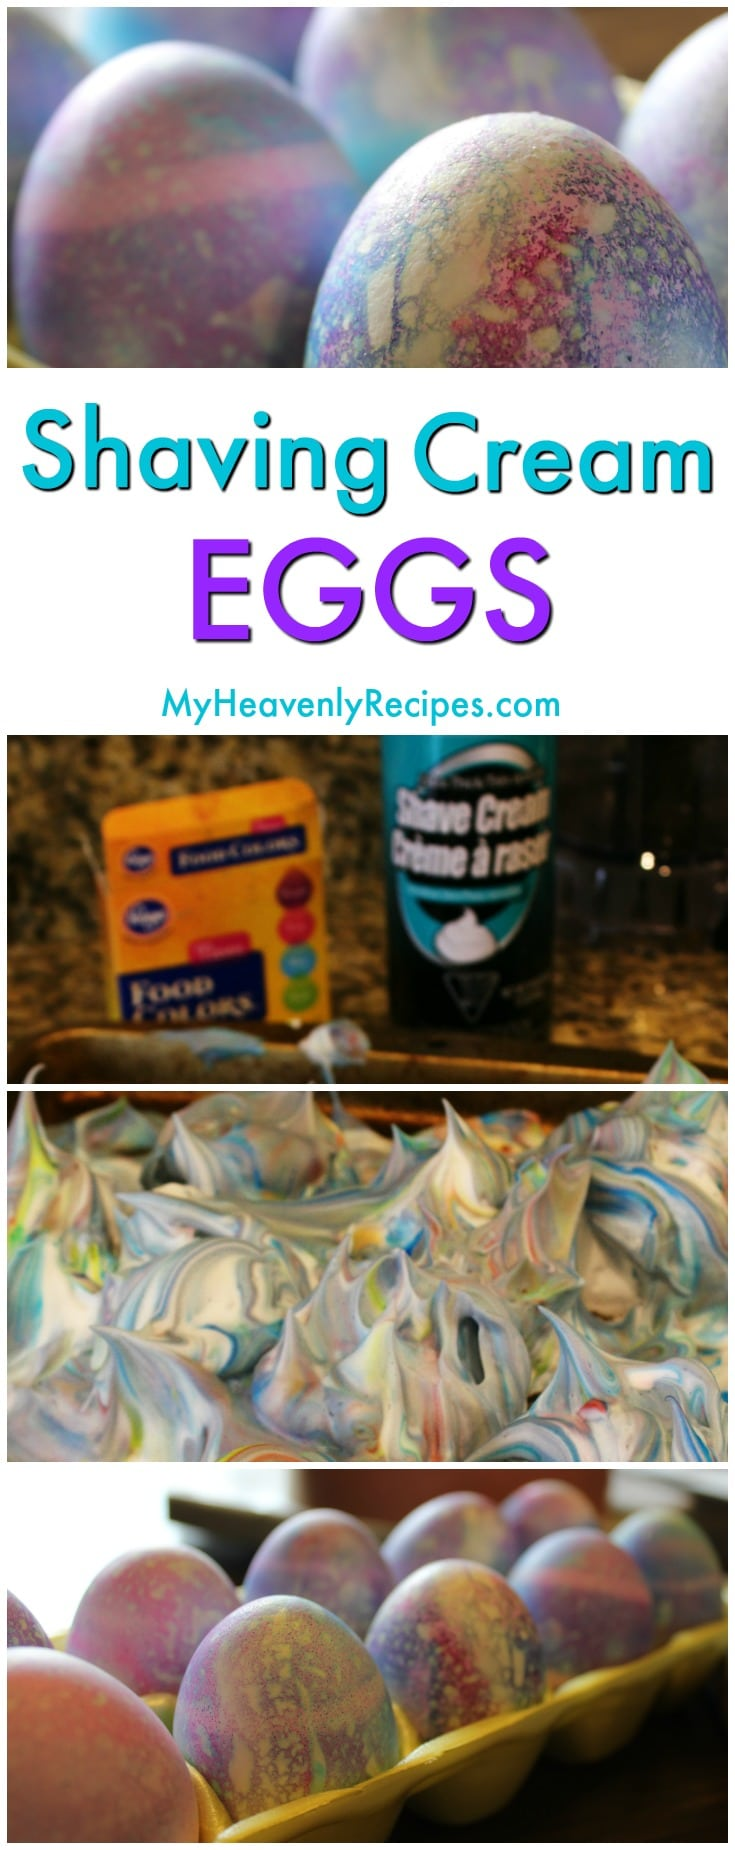 How to Dye Eggs with Shaving Cream - Shaving Cream Eggs are a fun Easter activity for kids of all ages! #easter #eggs #diy #fun #kidscrafts